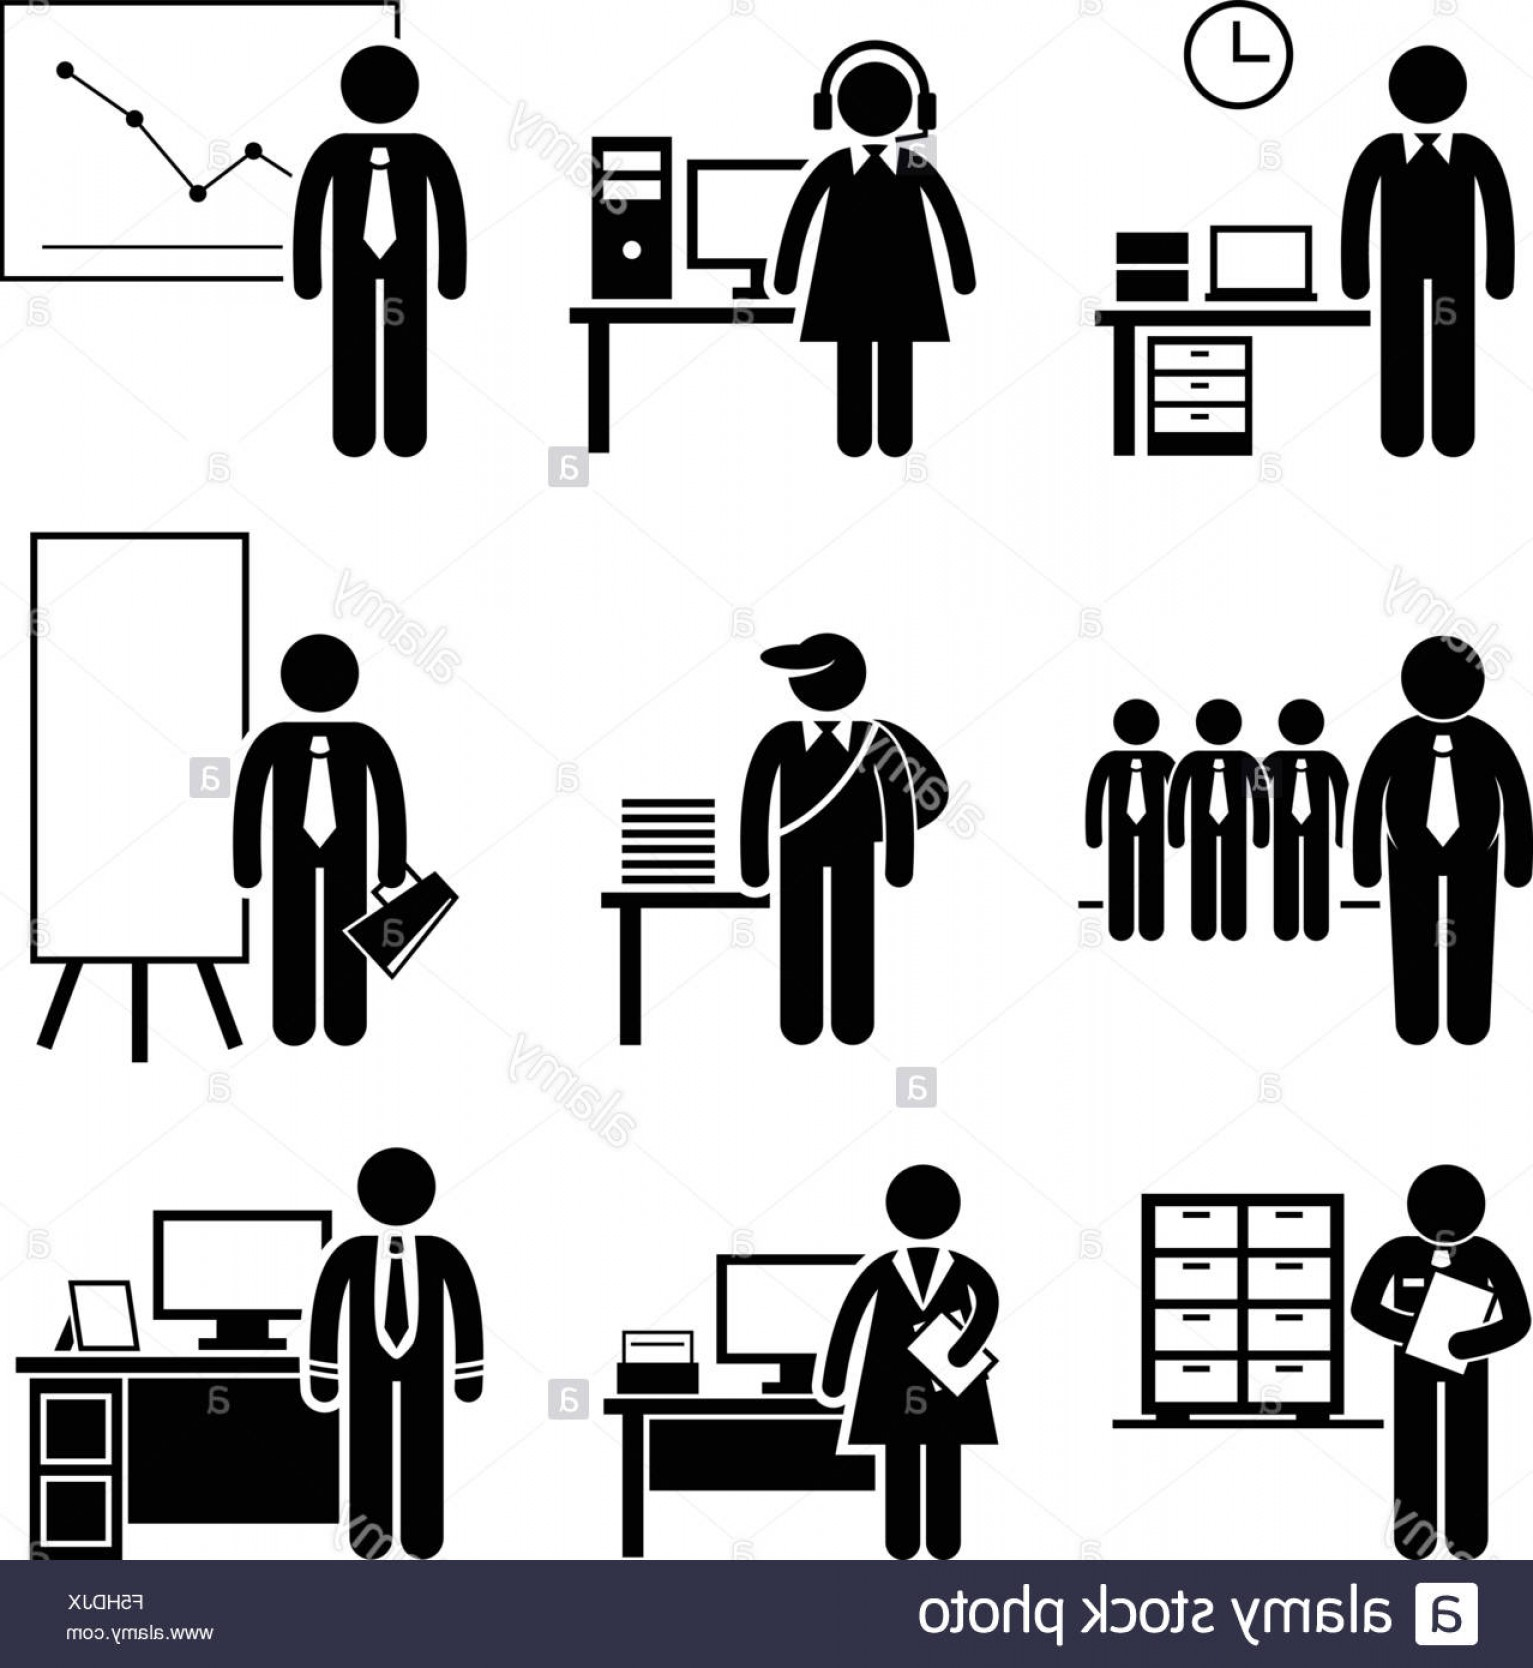 Support Staff Vector: Stock Photo Office Jobs Occupations Careers Staff Employee Help Desk Support Analyst